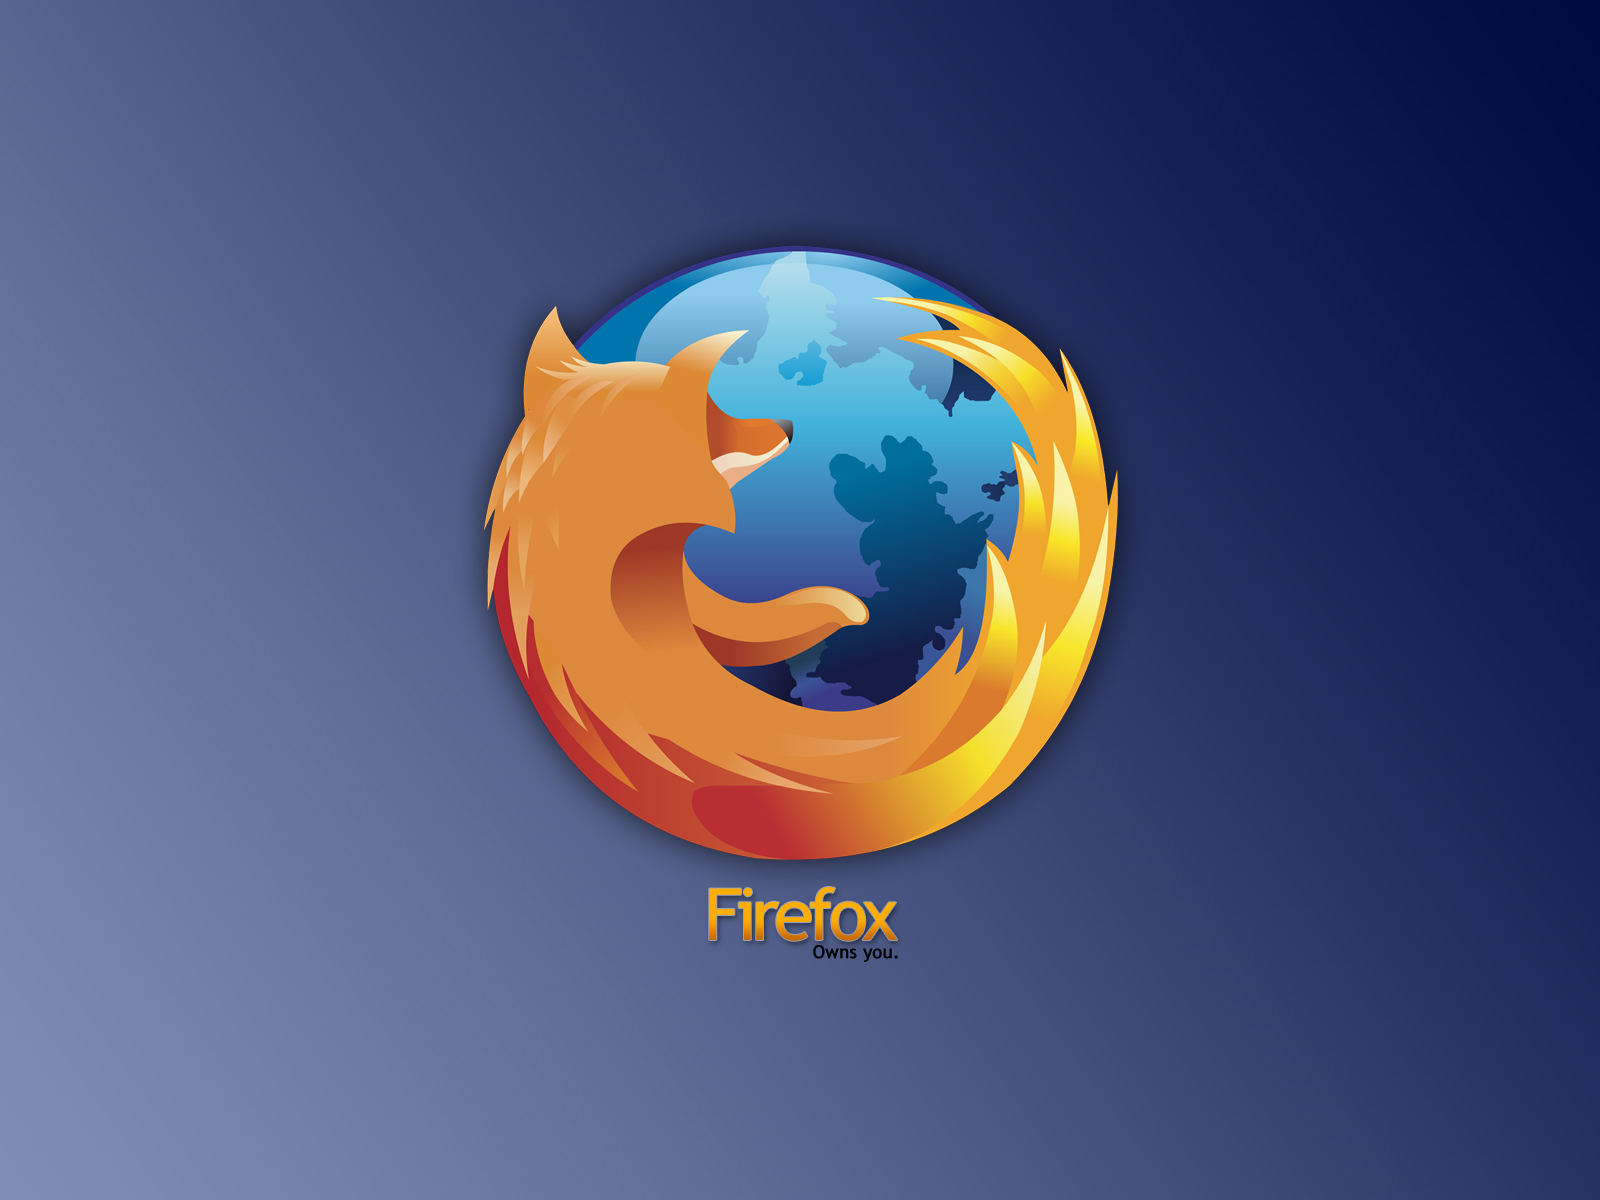 Firefox Owns You